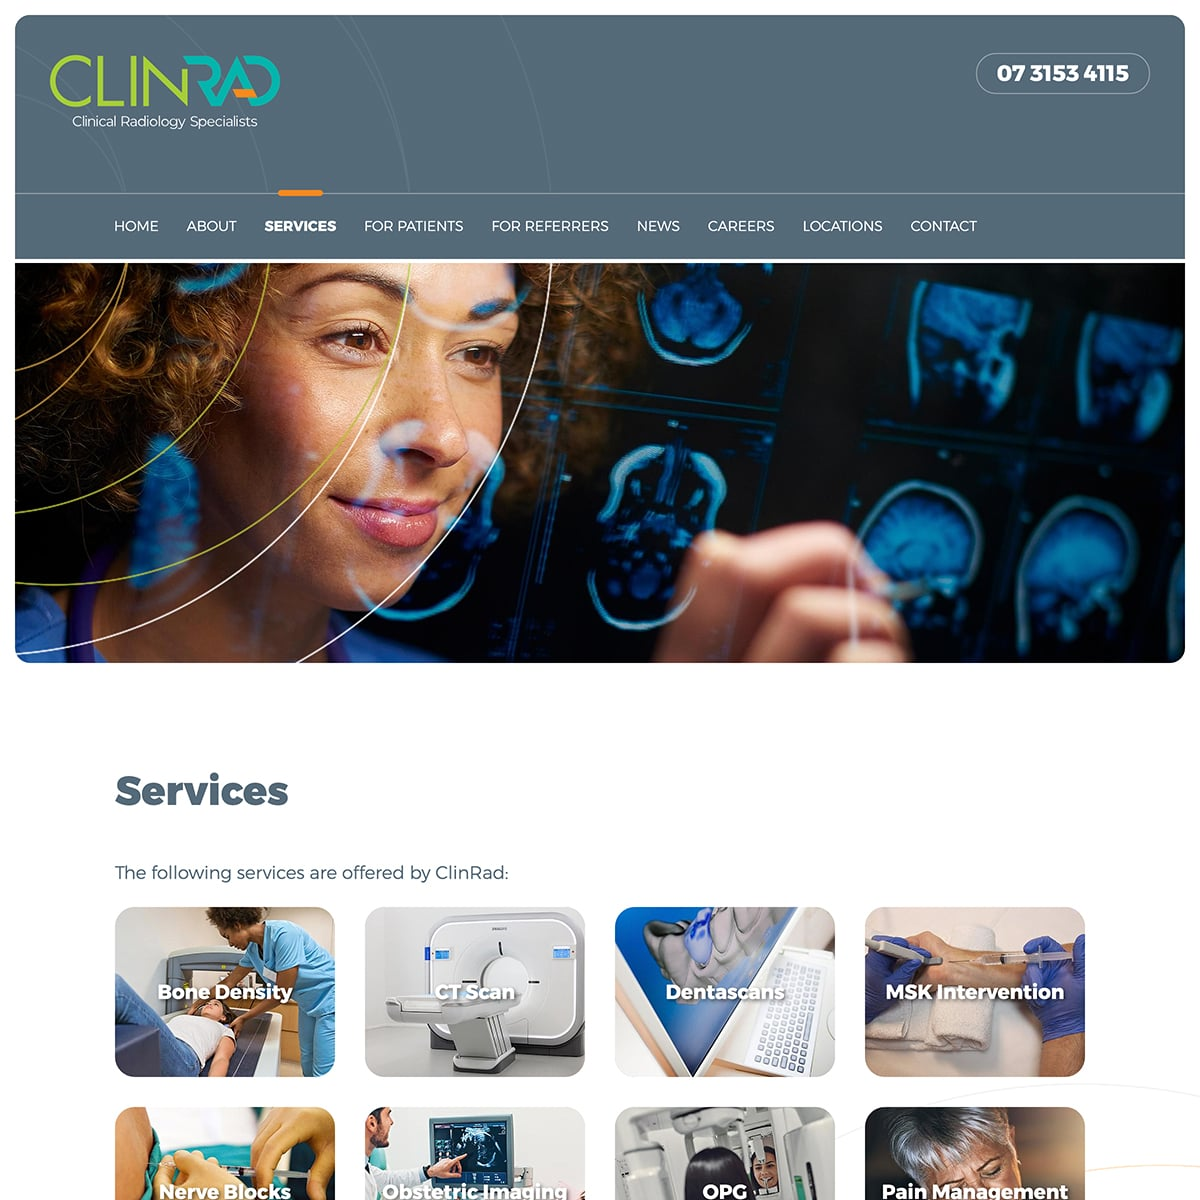 ClinRad - Services Index